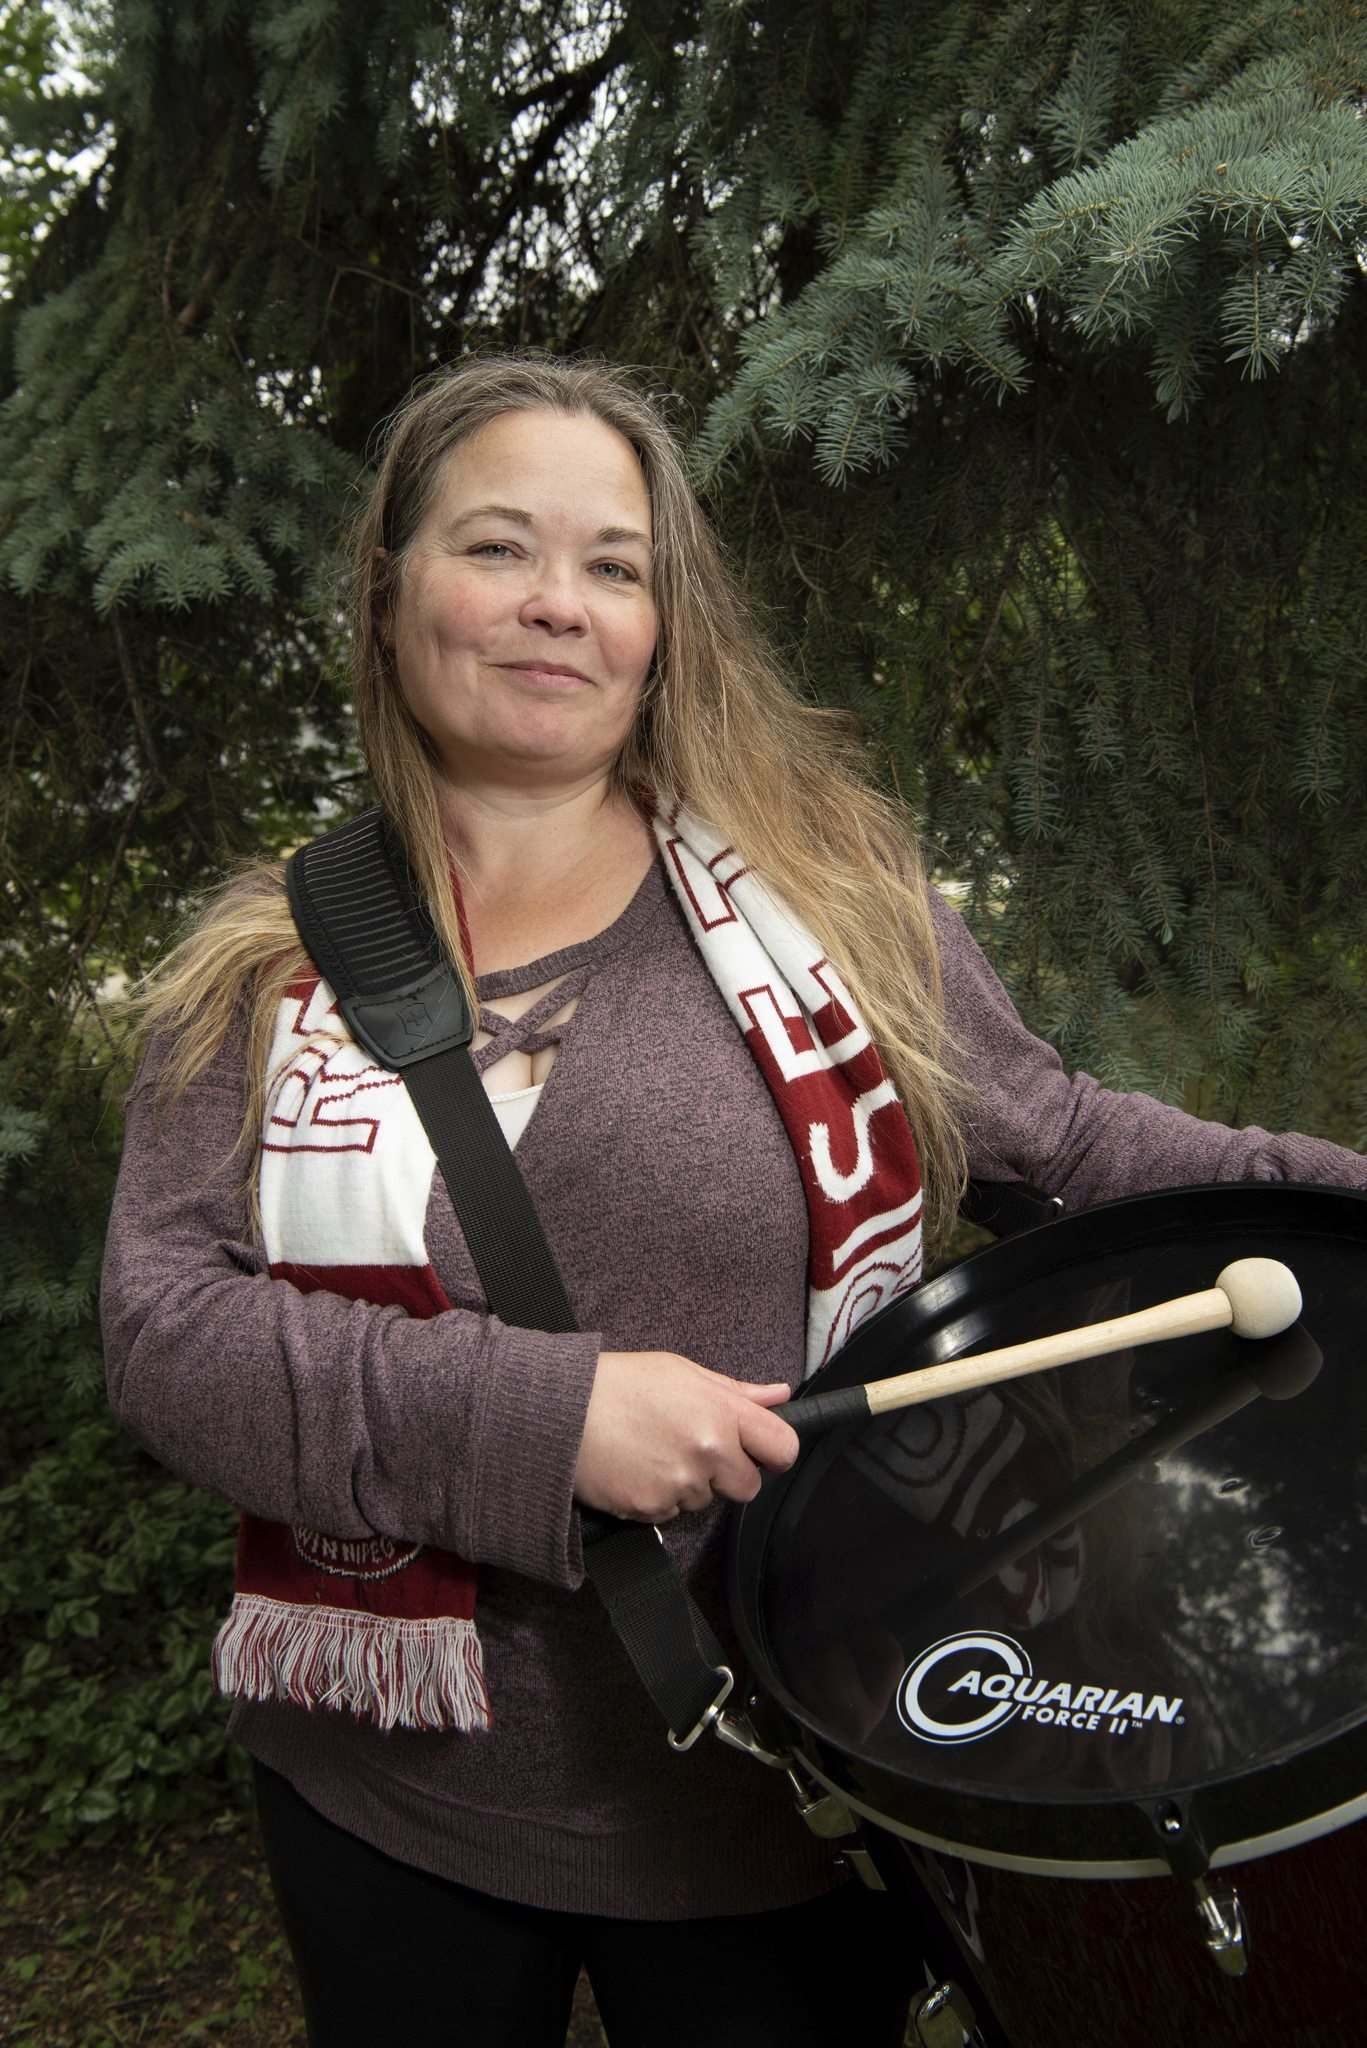 Nicky Cottee and members of the Red River Rising have stood outside Gate 2 at IG Field to watch the game on the big screen and sing and cheer for the club. (Alex Lupul / Winnipeg Free Press)